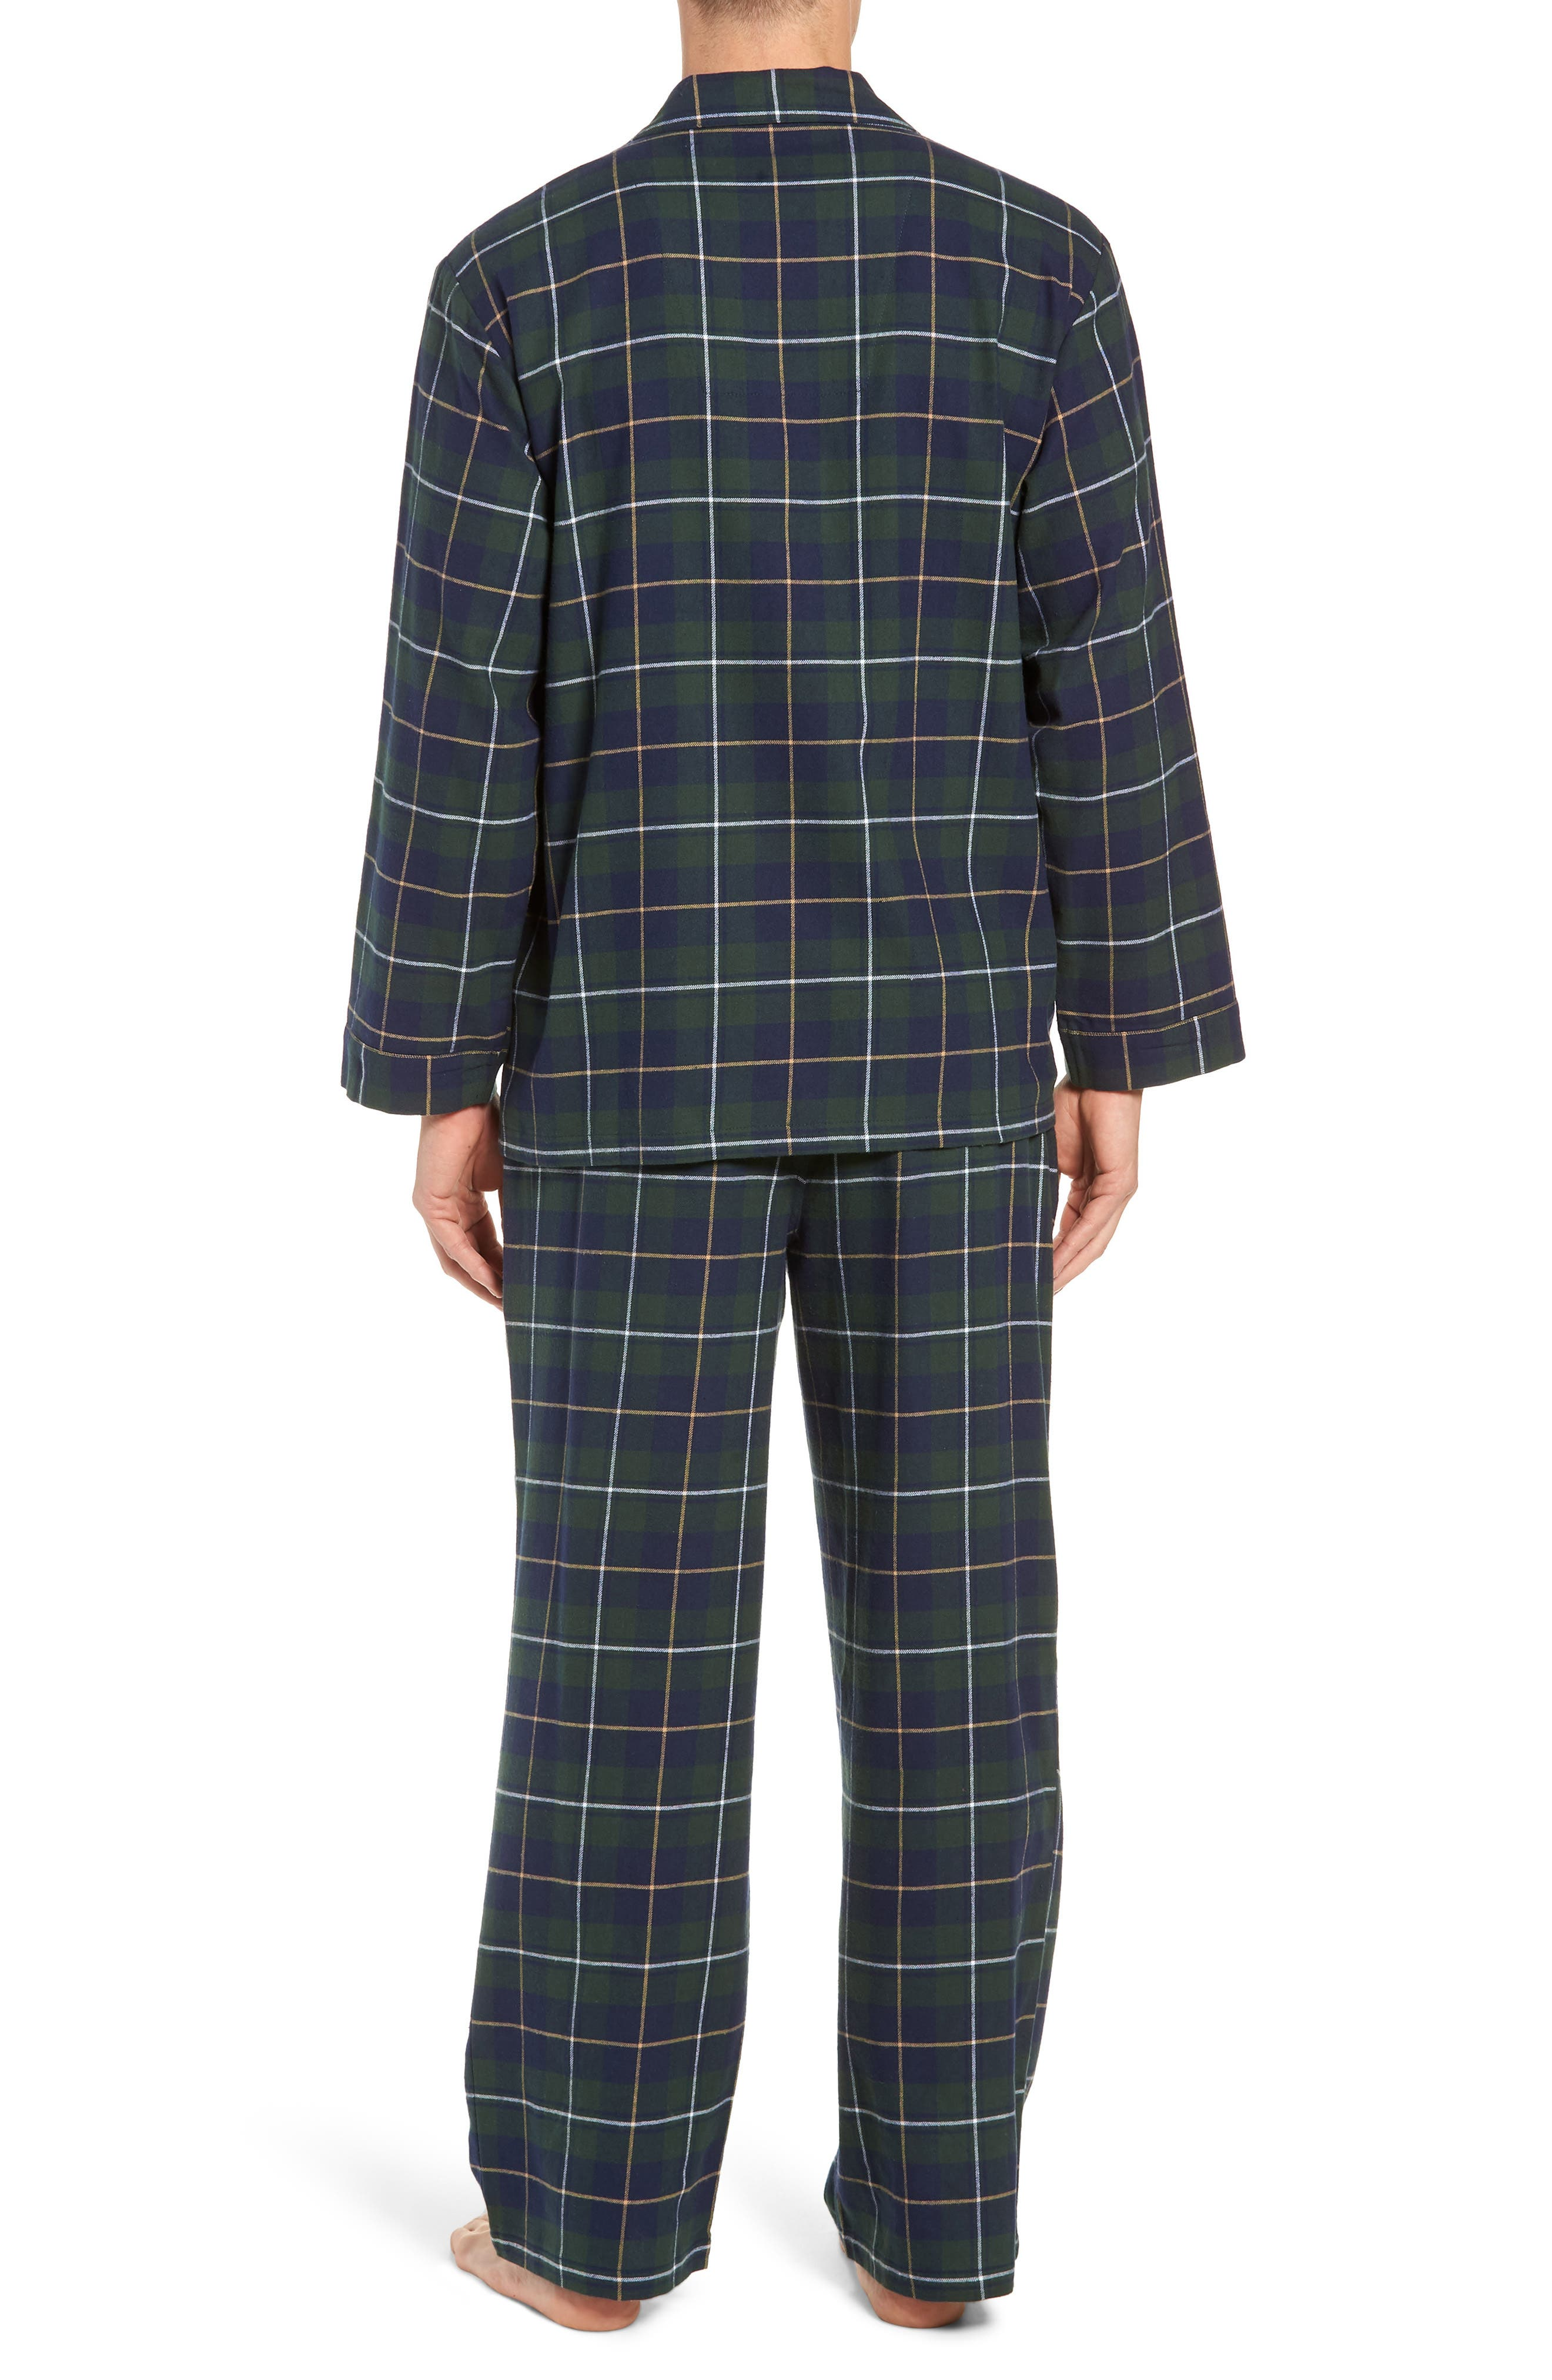 '824' Flannel Pajama Set,                             Alternate thumbnail 2, color,                             GREEN CHARCOAL FADED PLAID